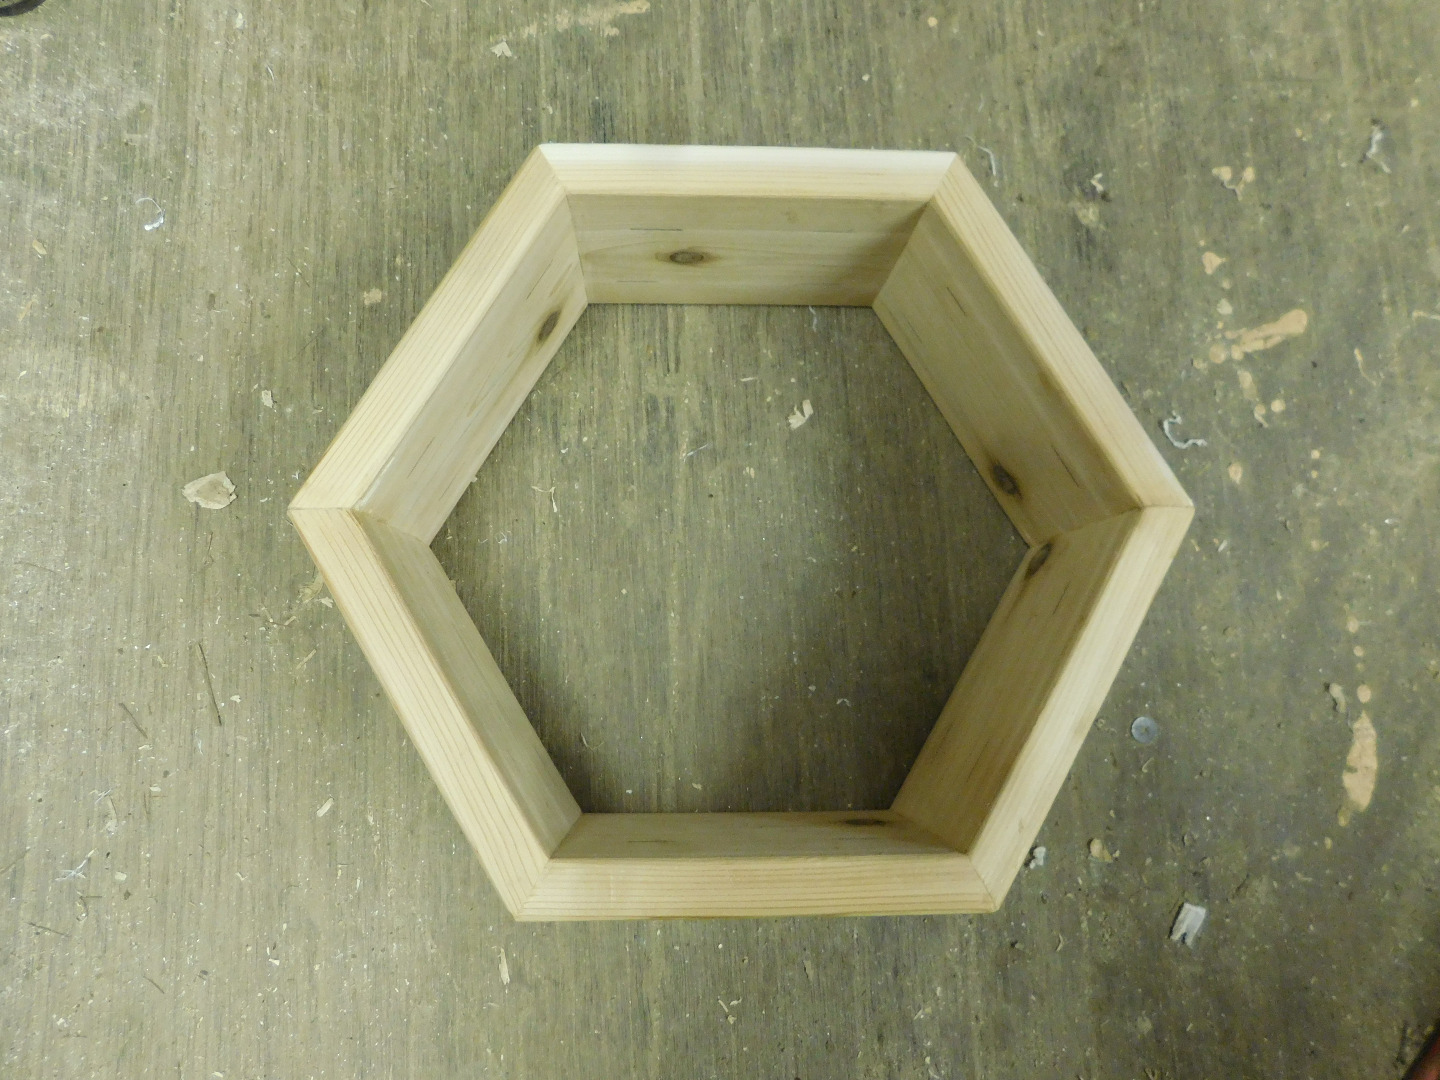 Picture of The First Hexagon: the Bottom Board and the Top Quilt Box